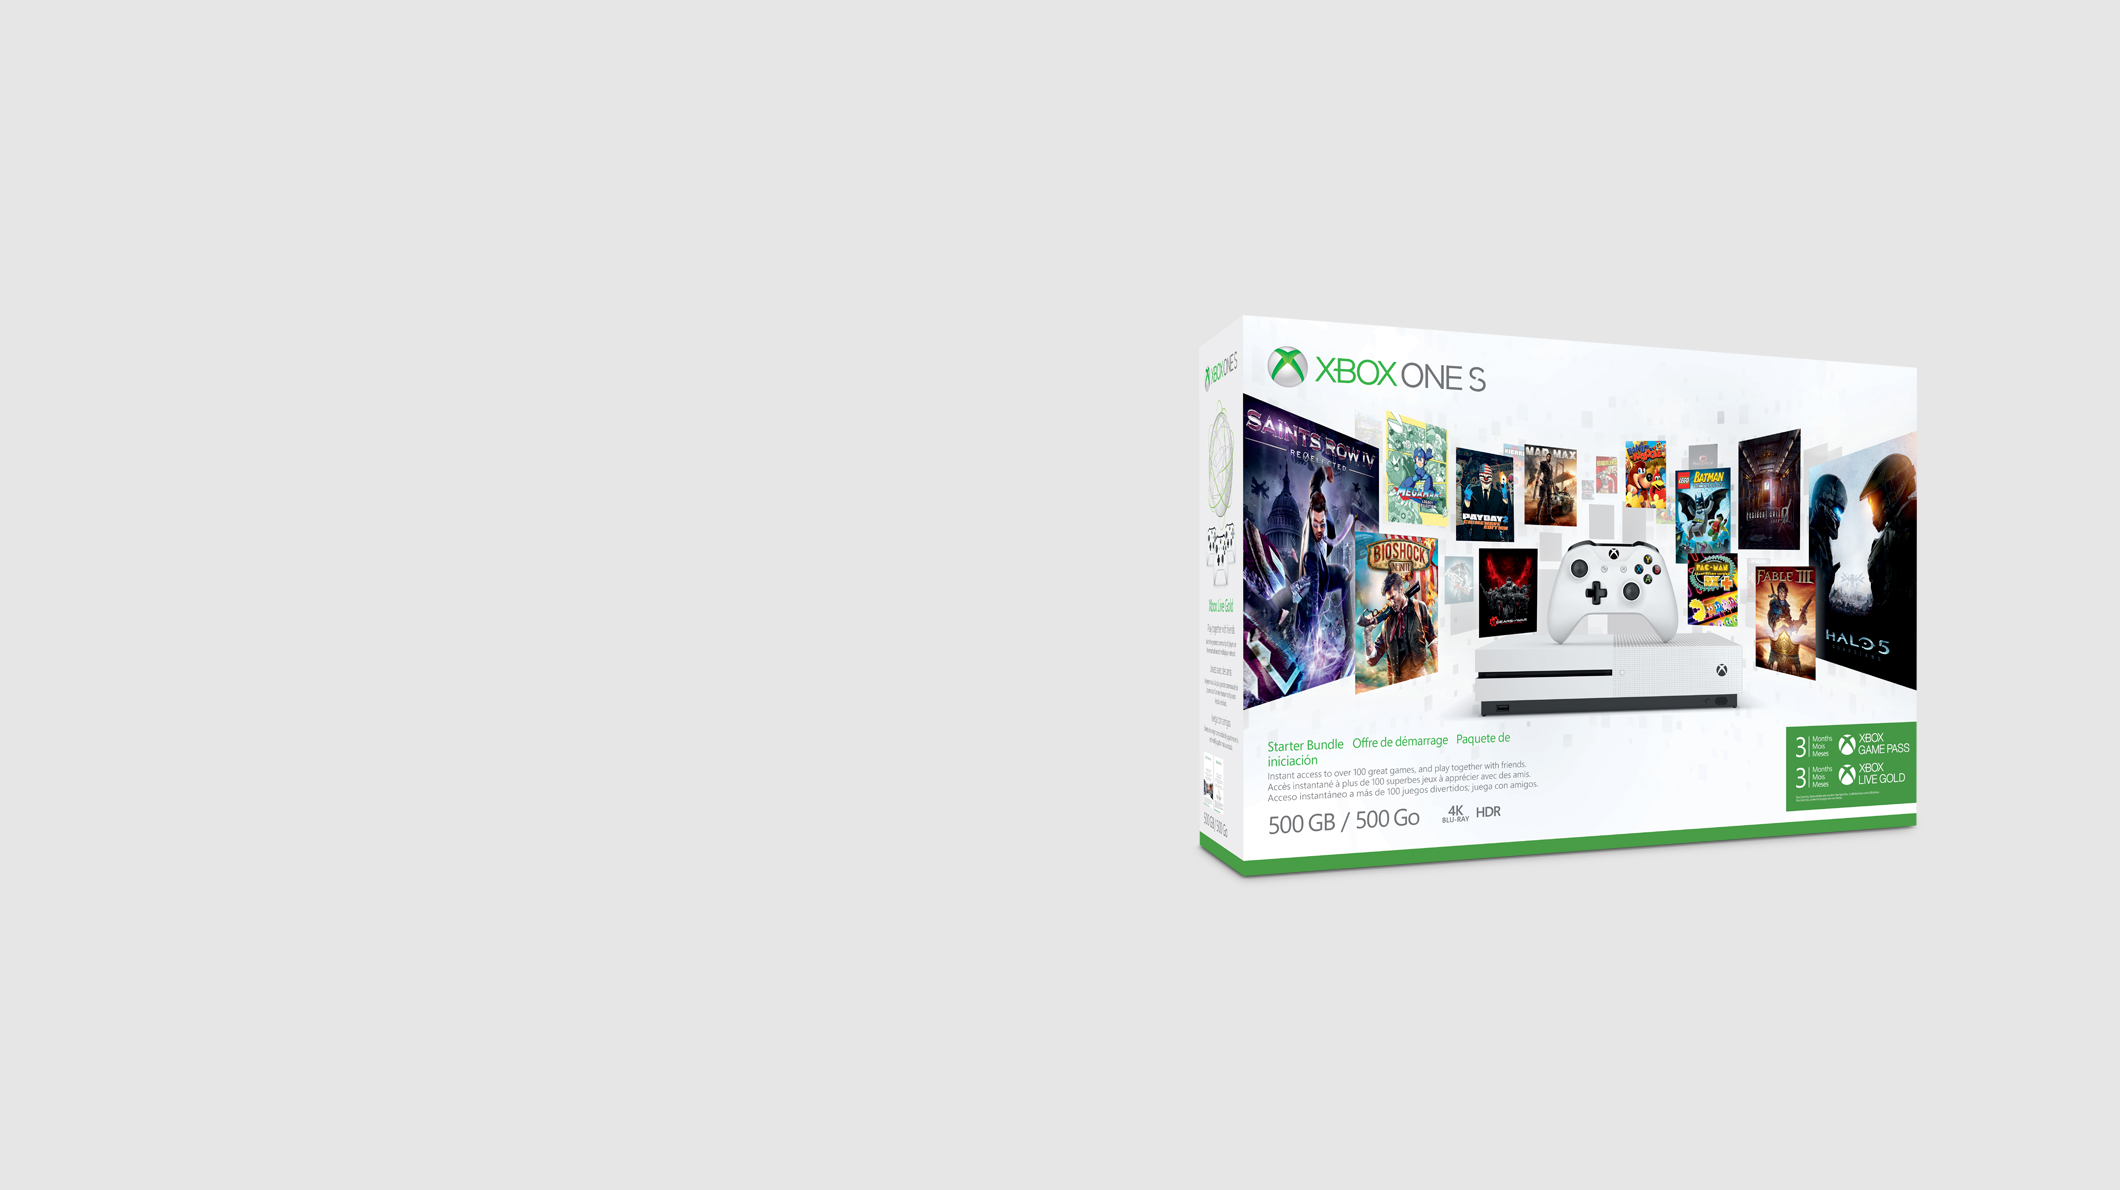 An Xbox One S Starter Bundle